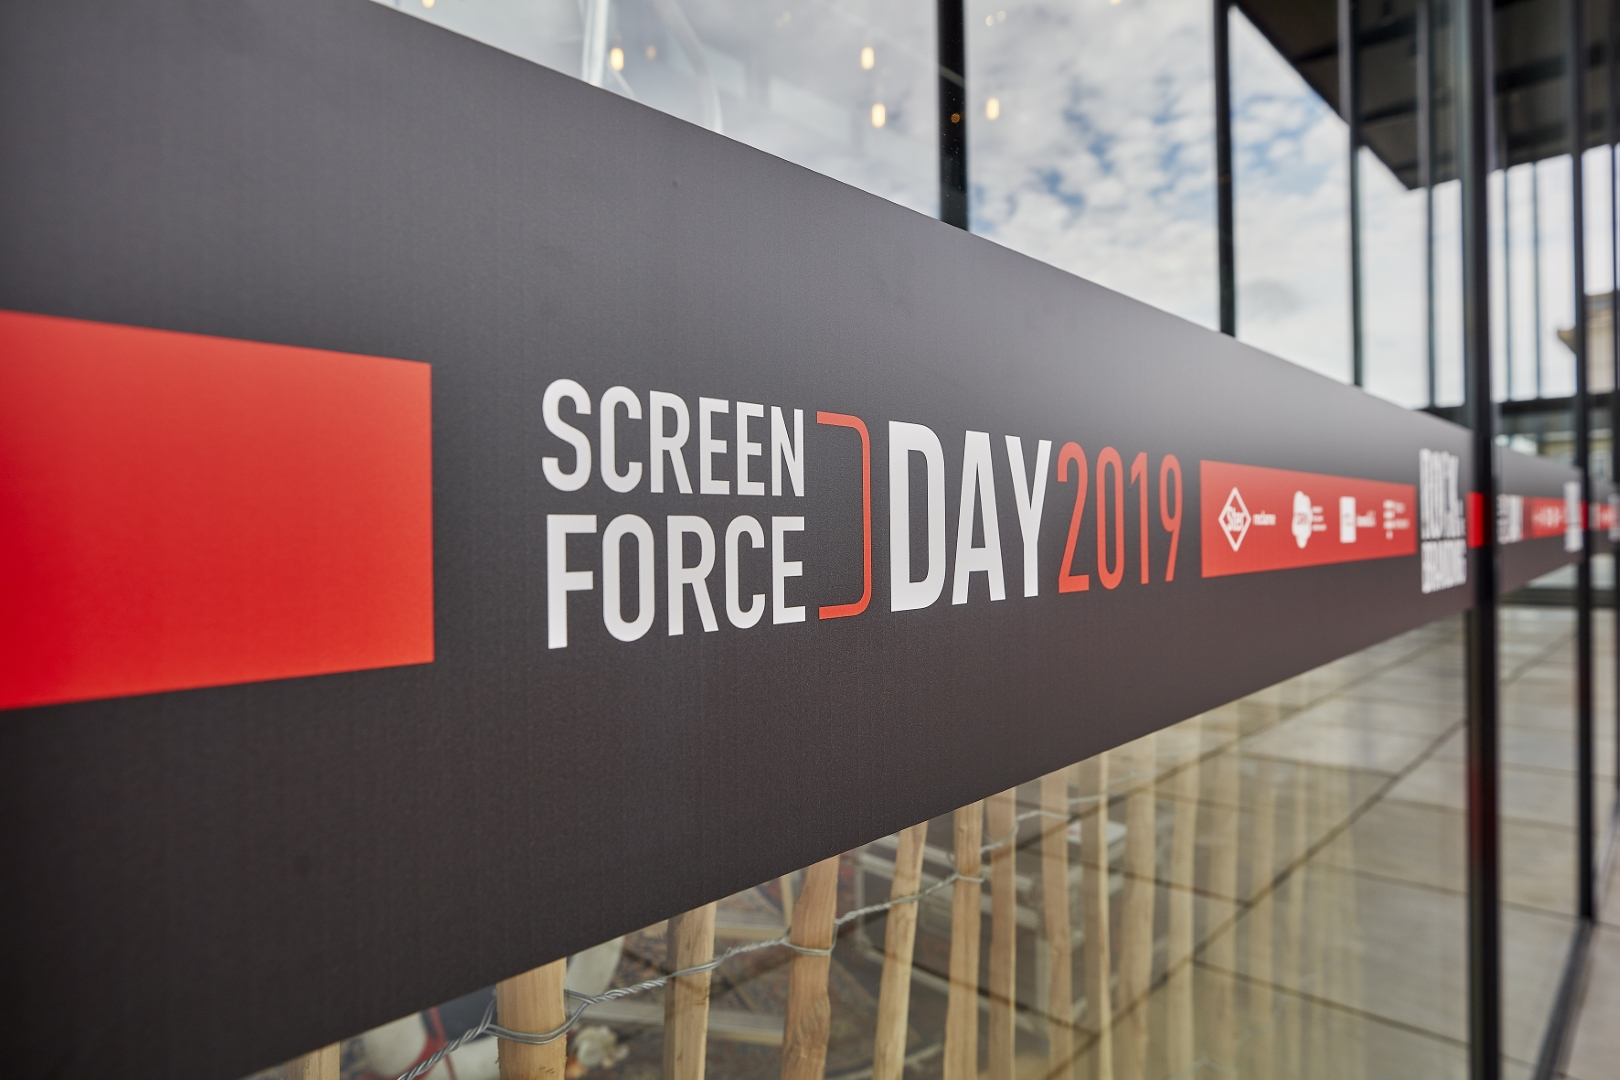 Screenforce Day 2019